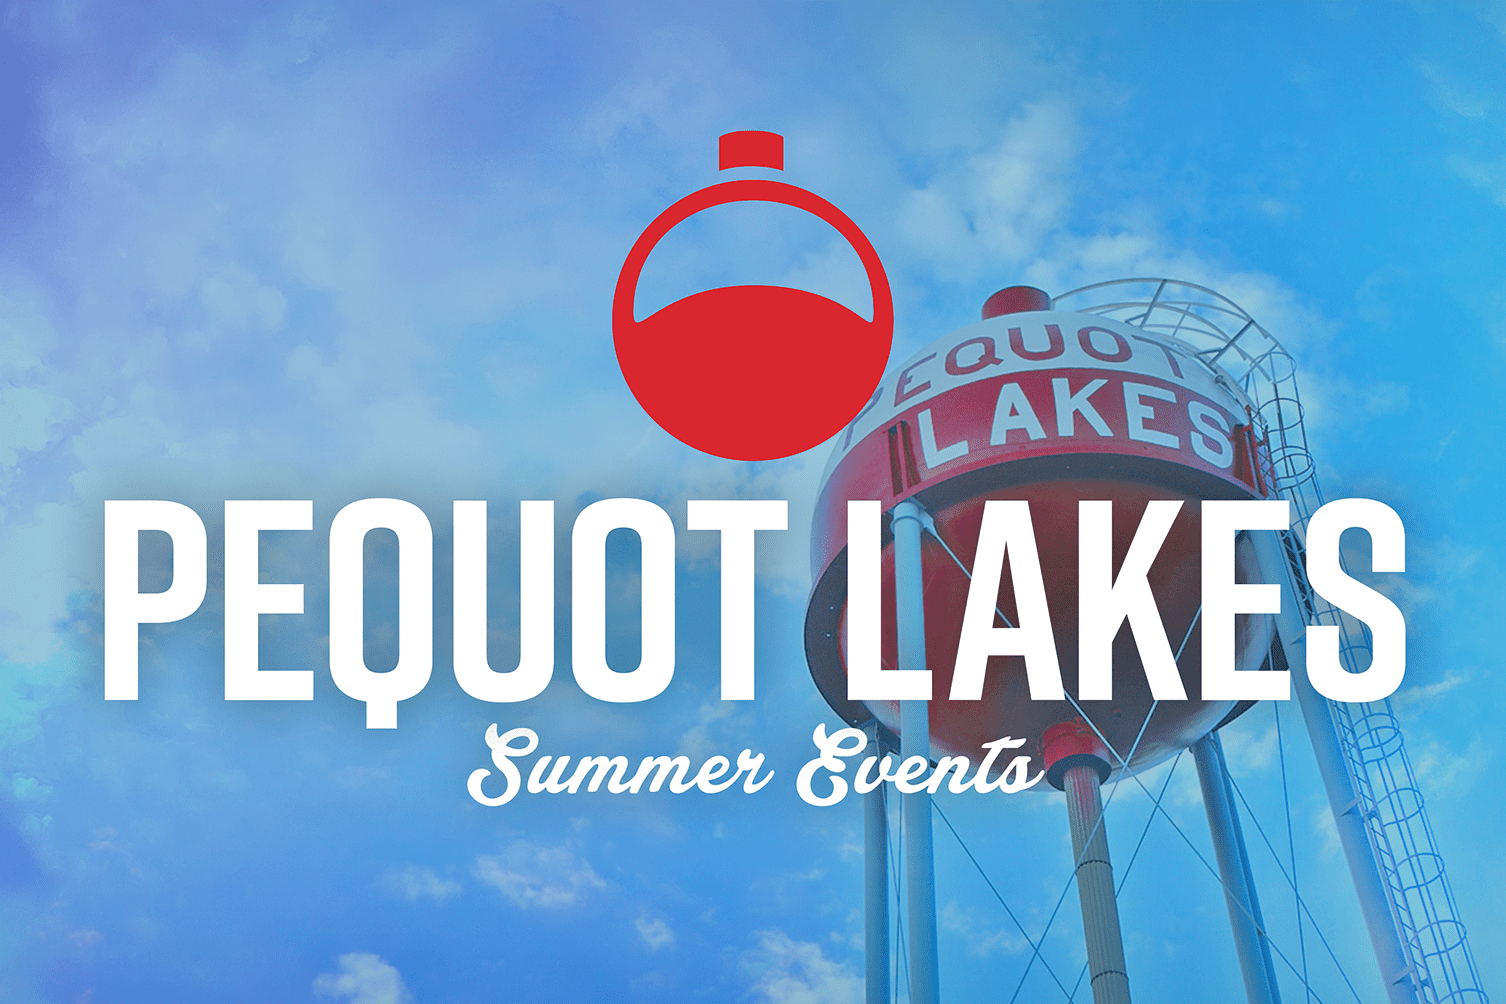 Get involved with summer events in Pequot Lakes!